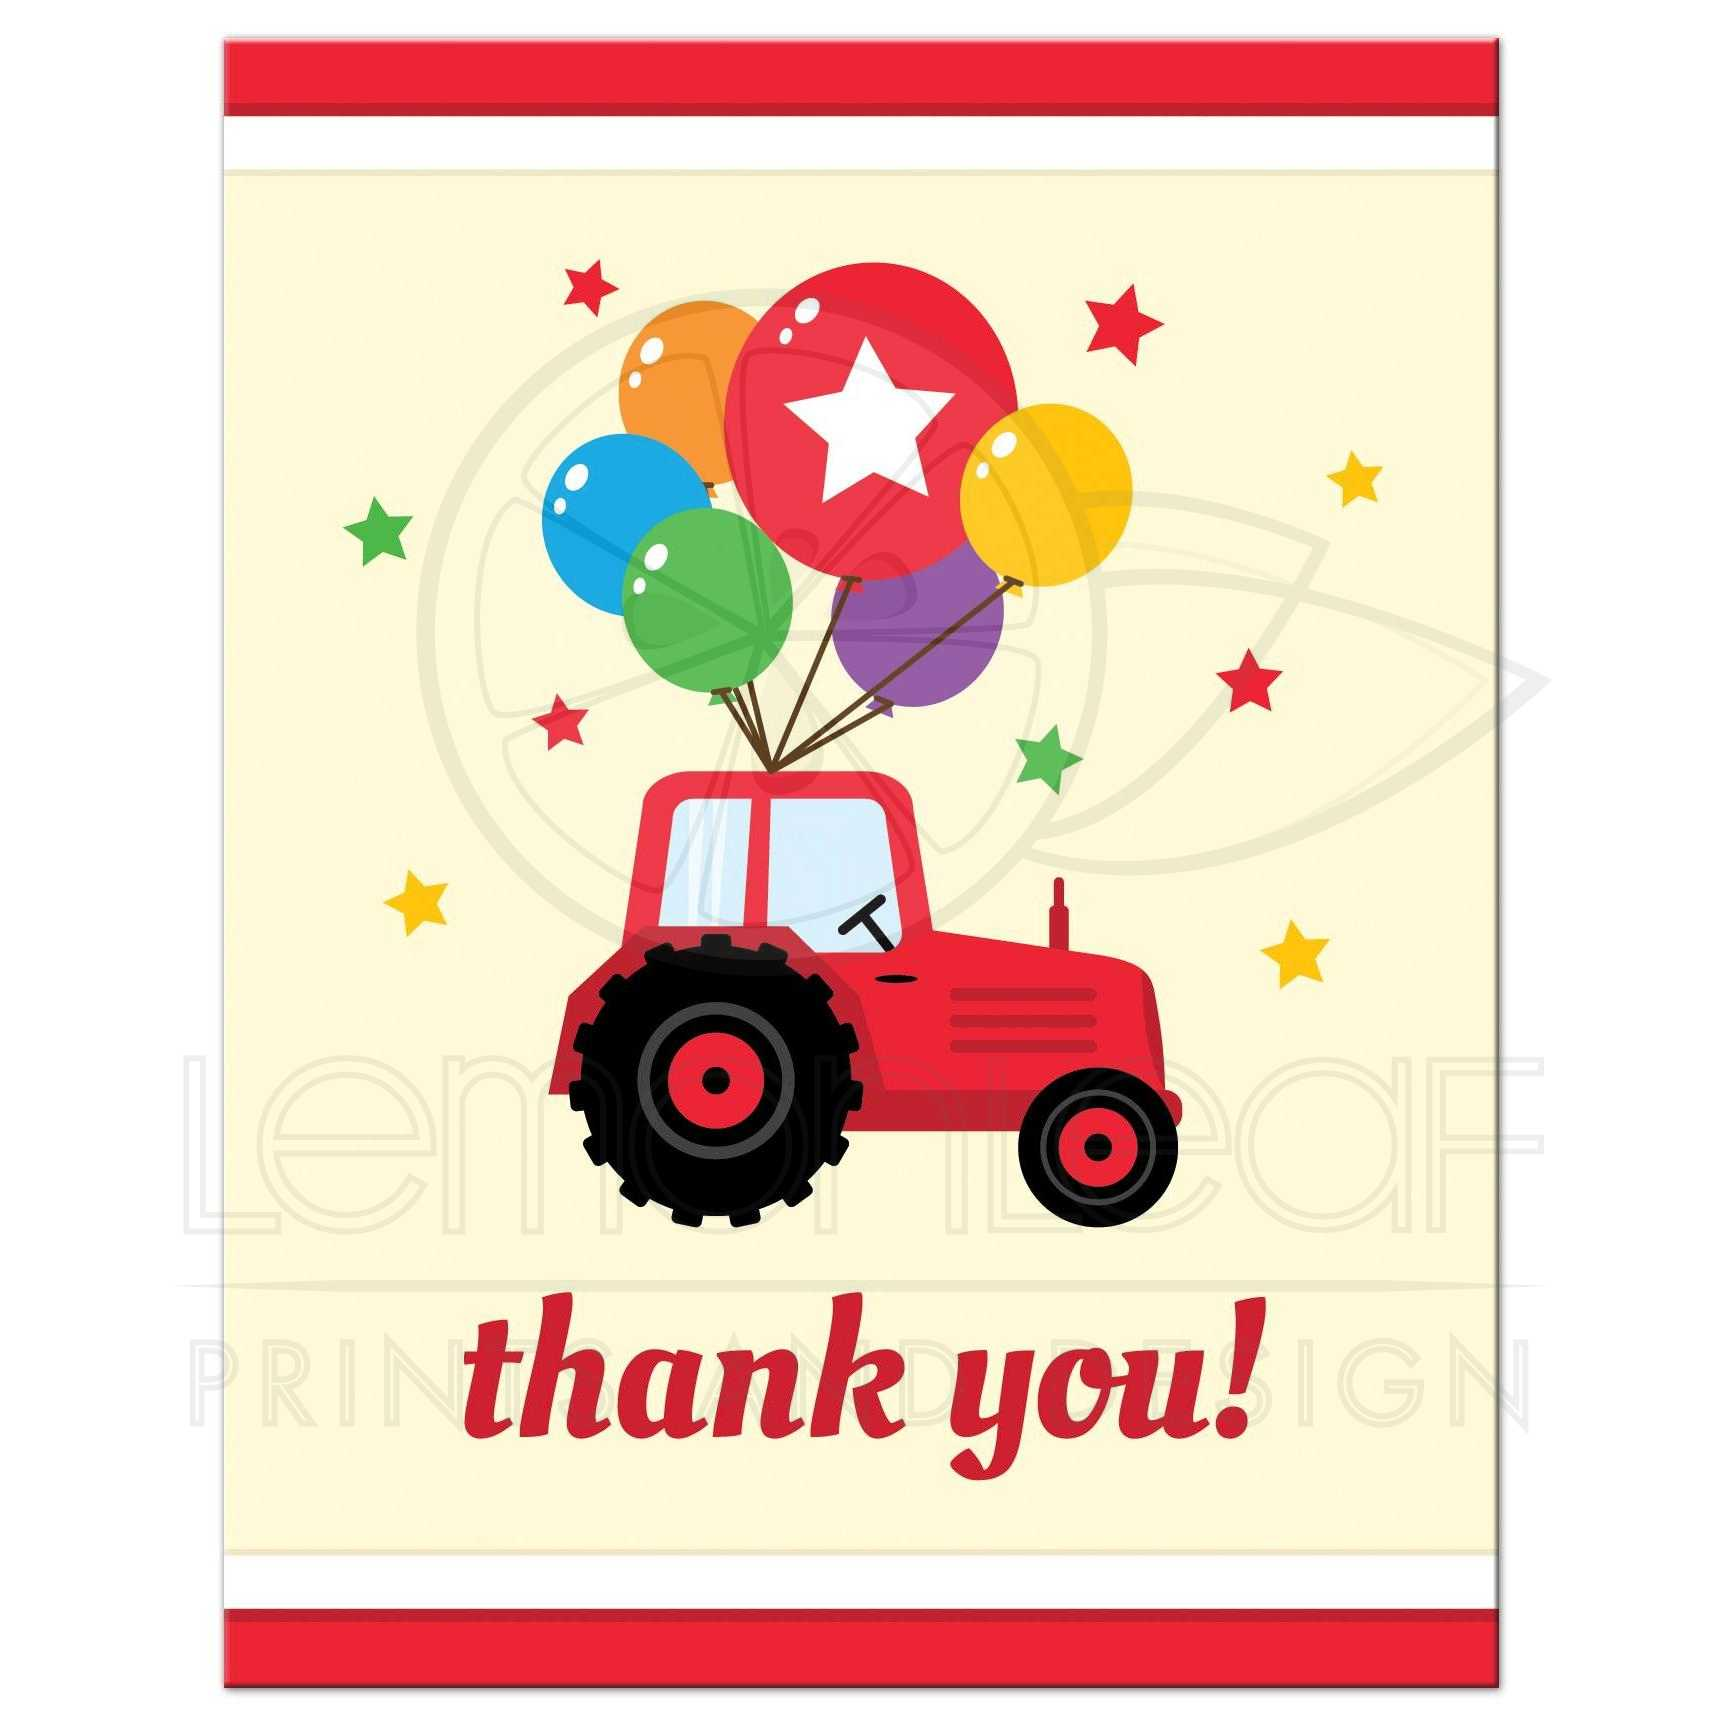 Birthday party thank you note card - red tractor and colorful balloons